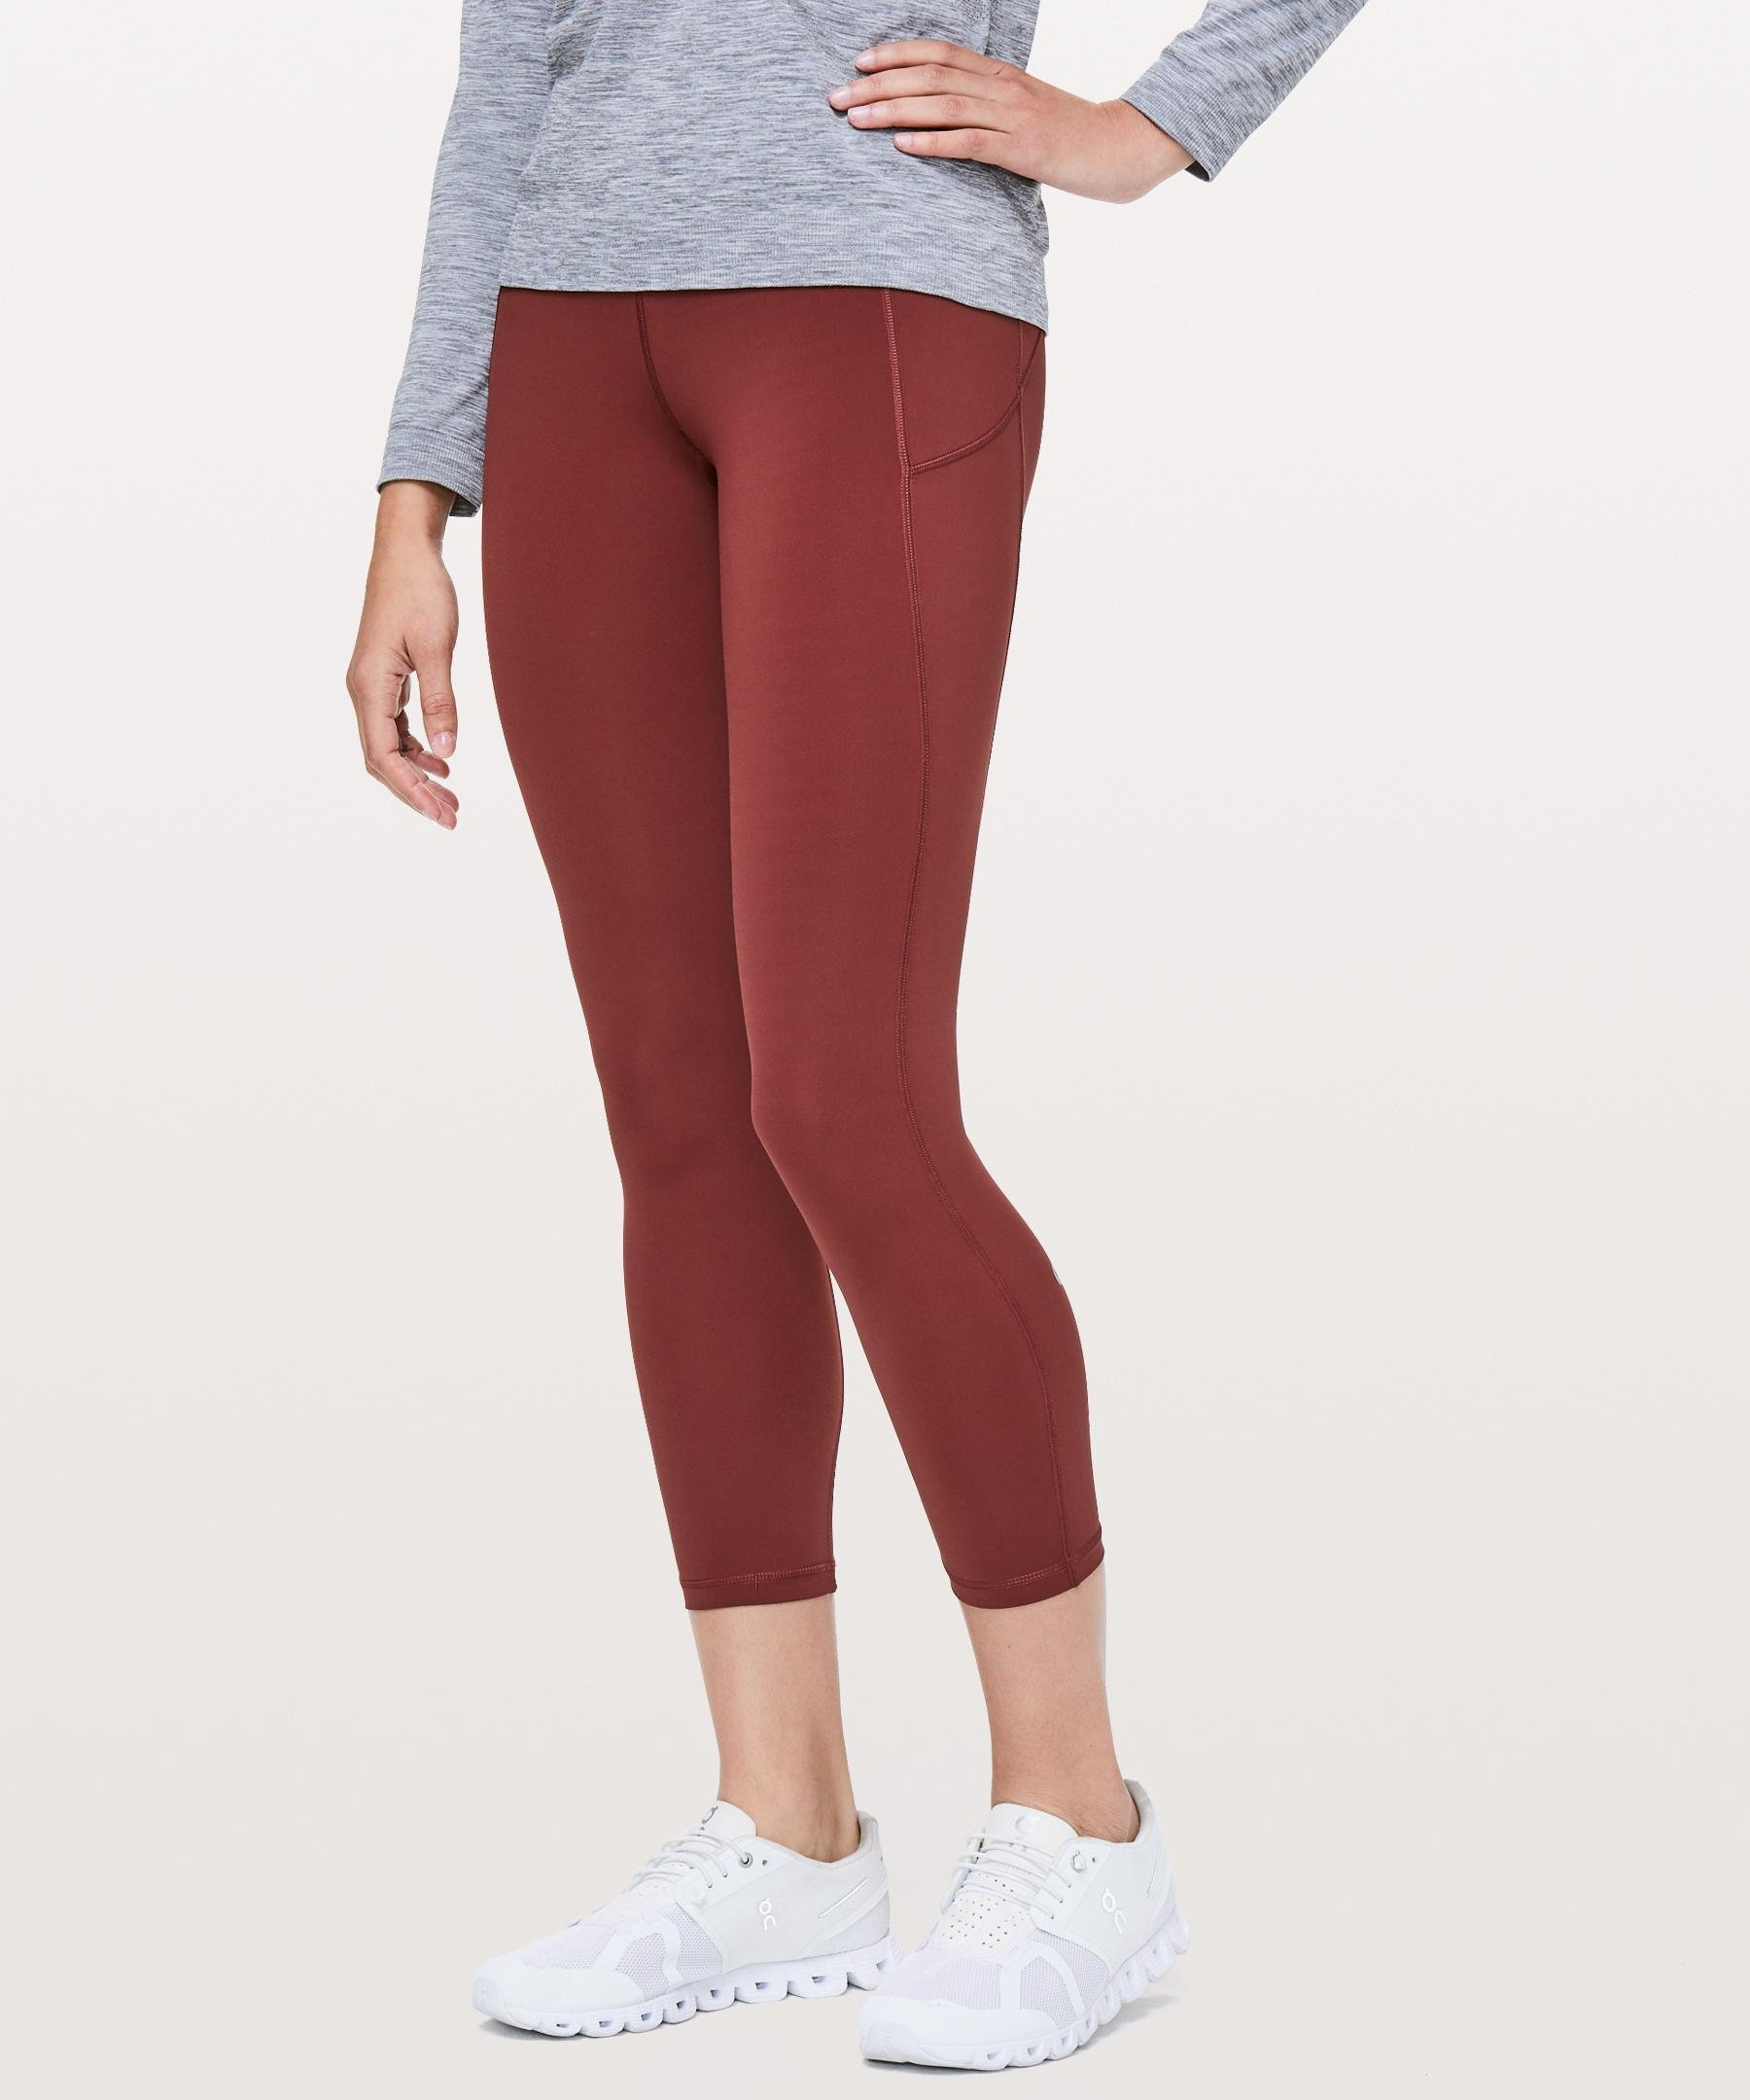 a57188eae lululemon athletica Final Lap Crop in Red - Lyst